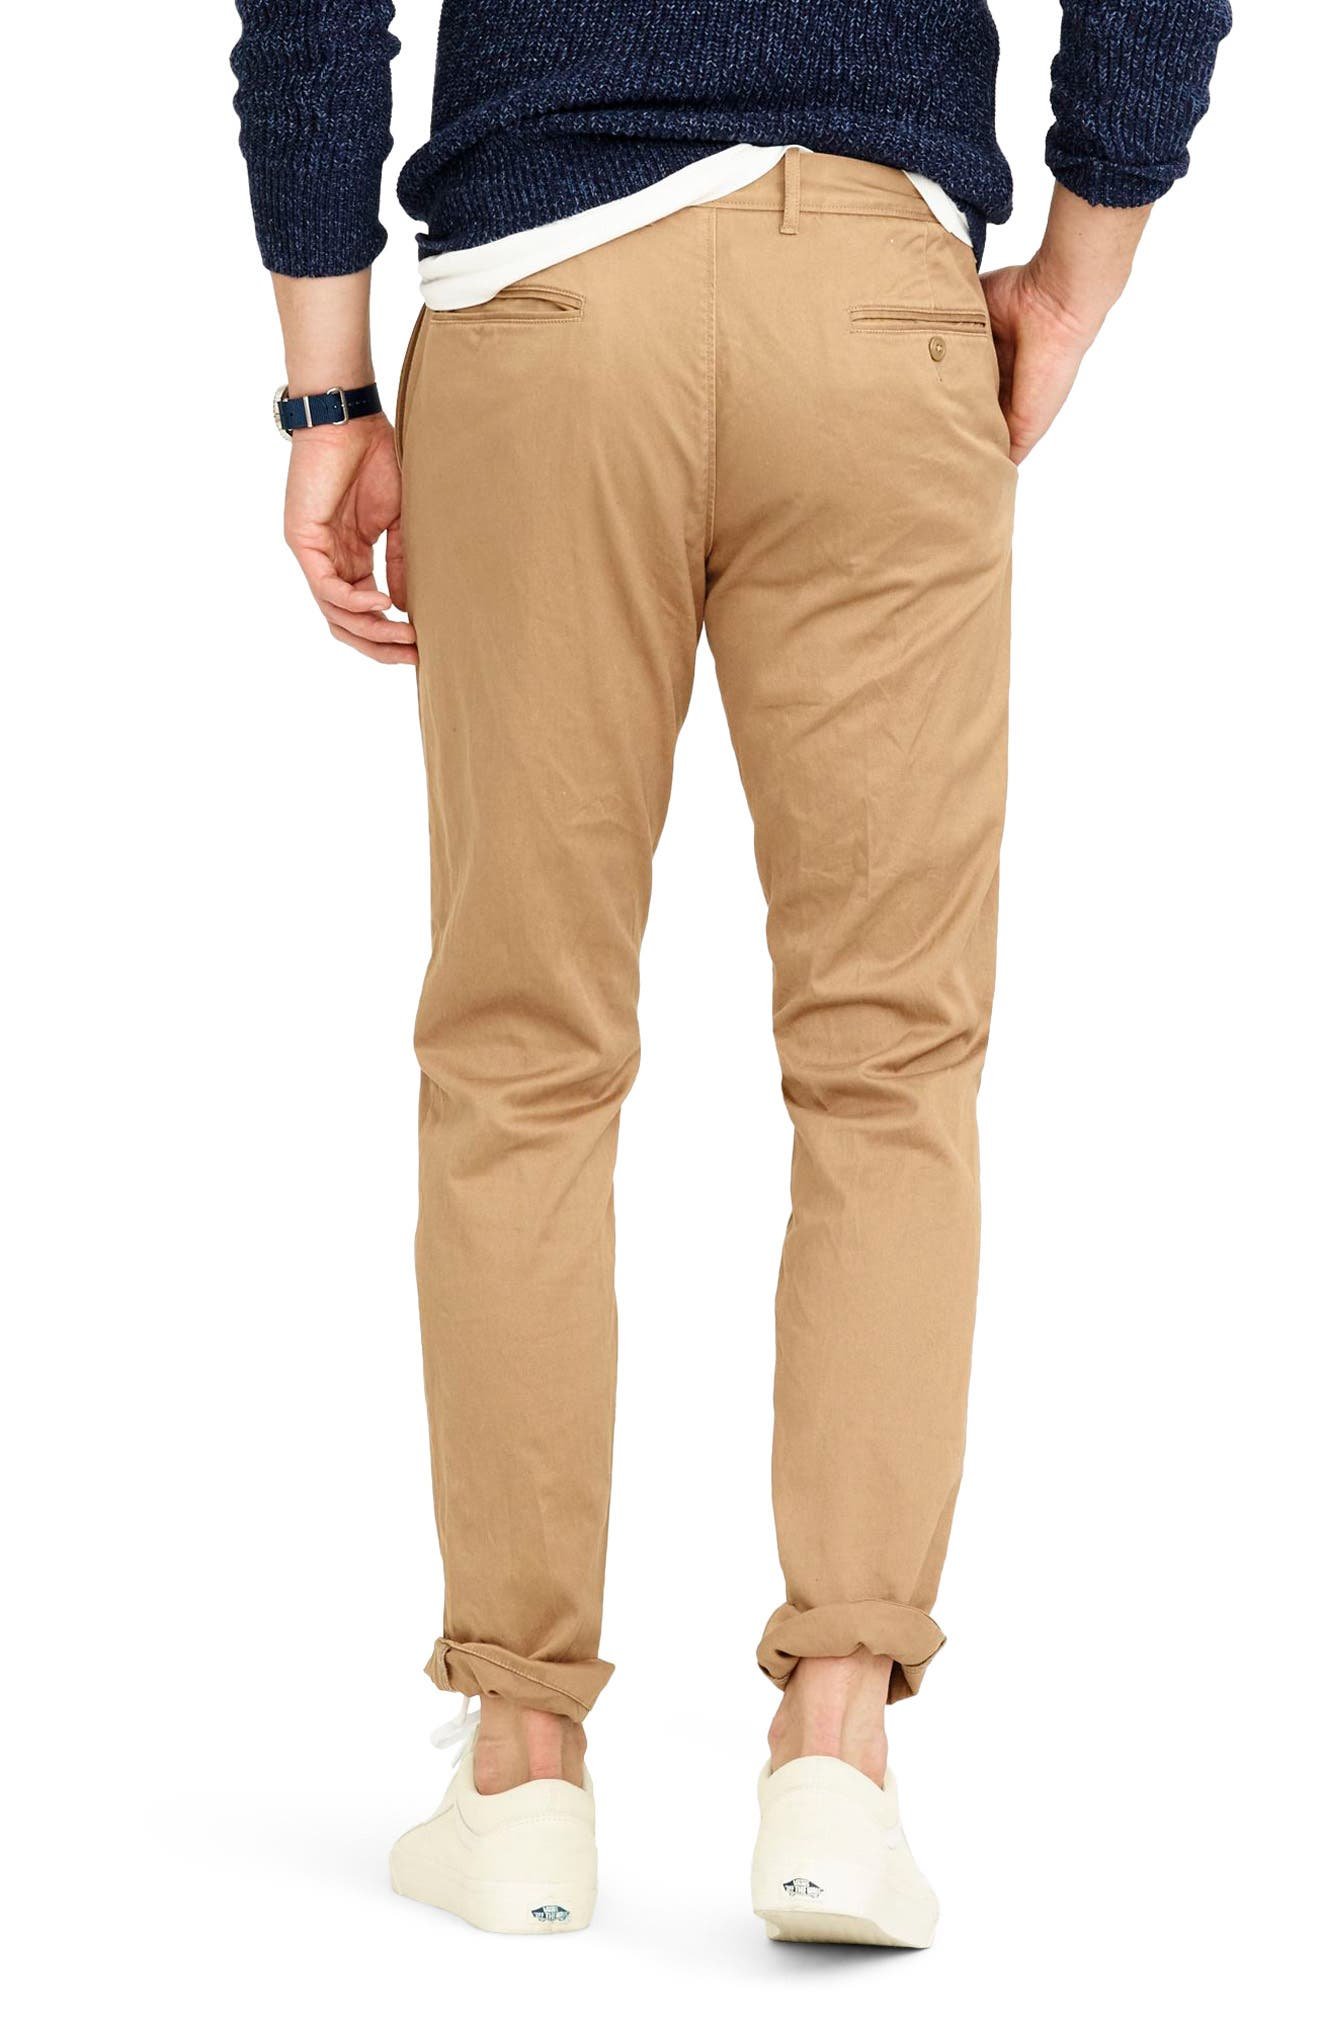 484 Slim Fit Stretch Chino Pants,                             Alternate thumbnail 17, color,